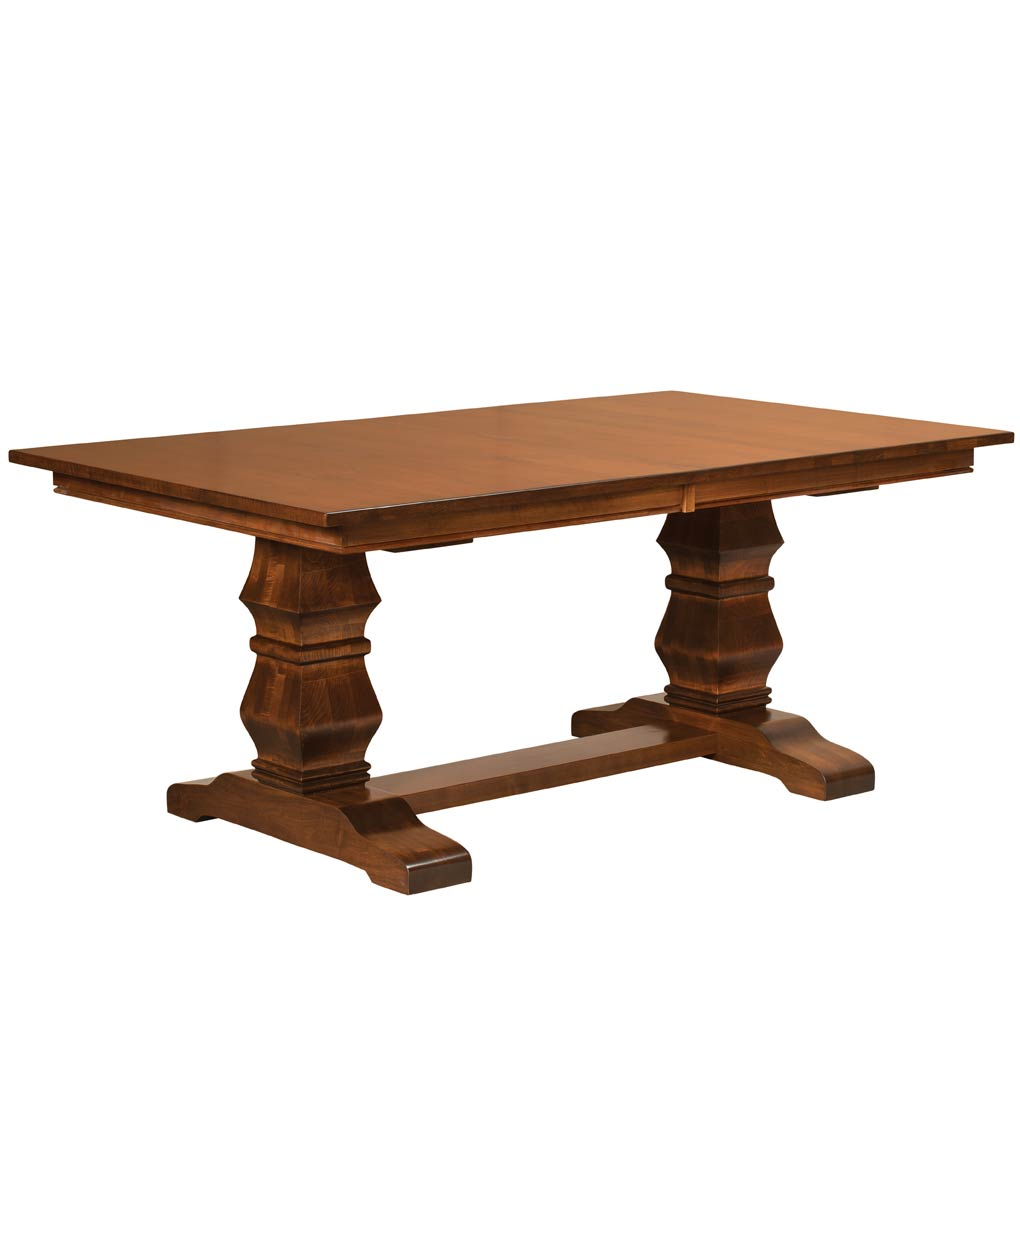 Bradbury trestle table amish direct furniture for Single leg dining table